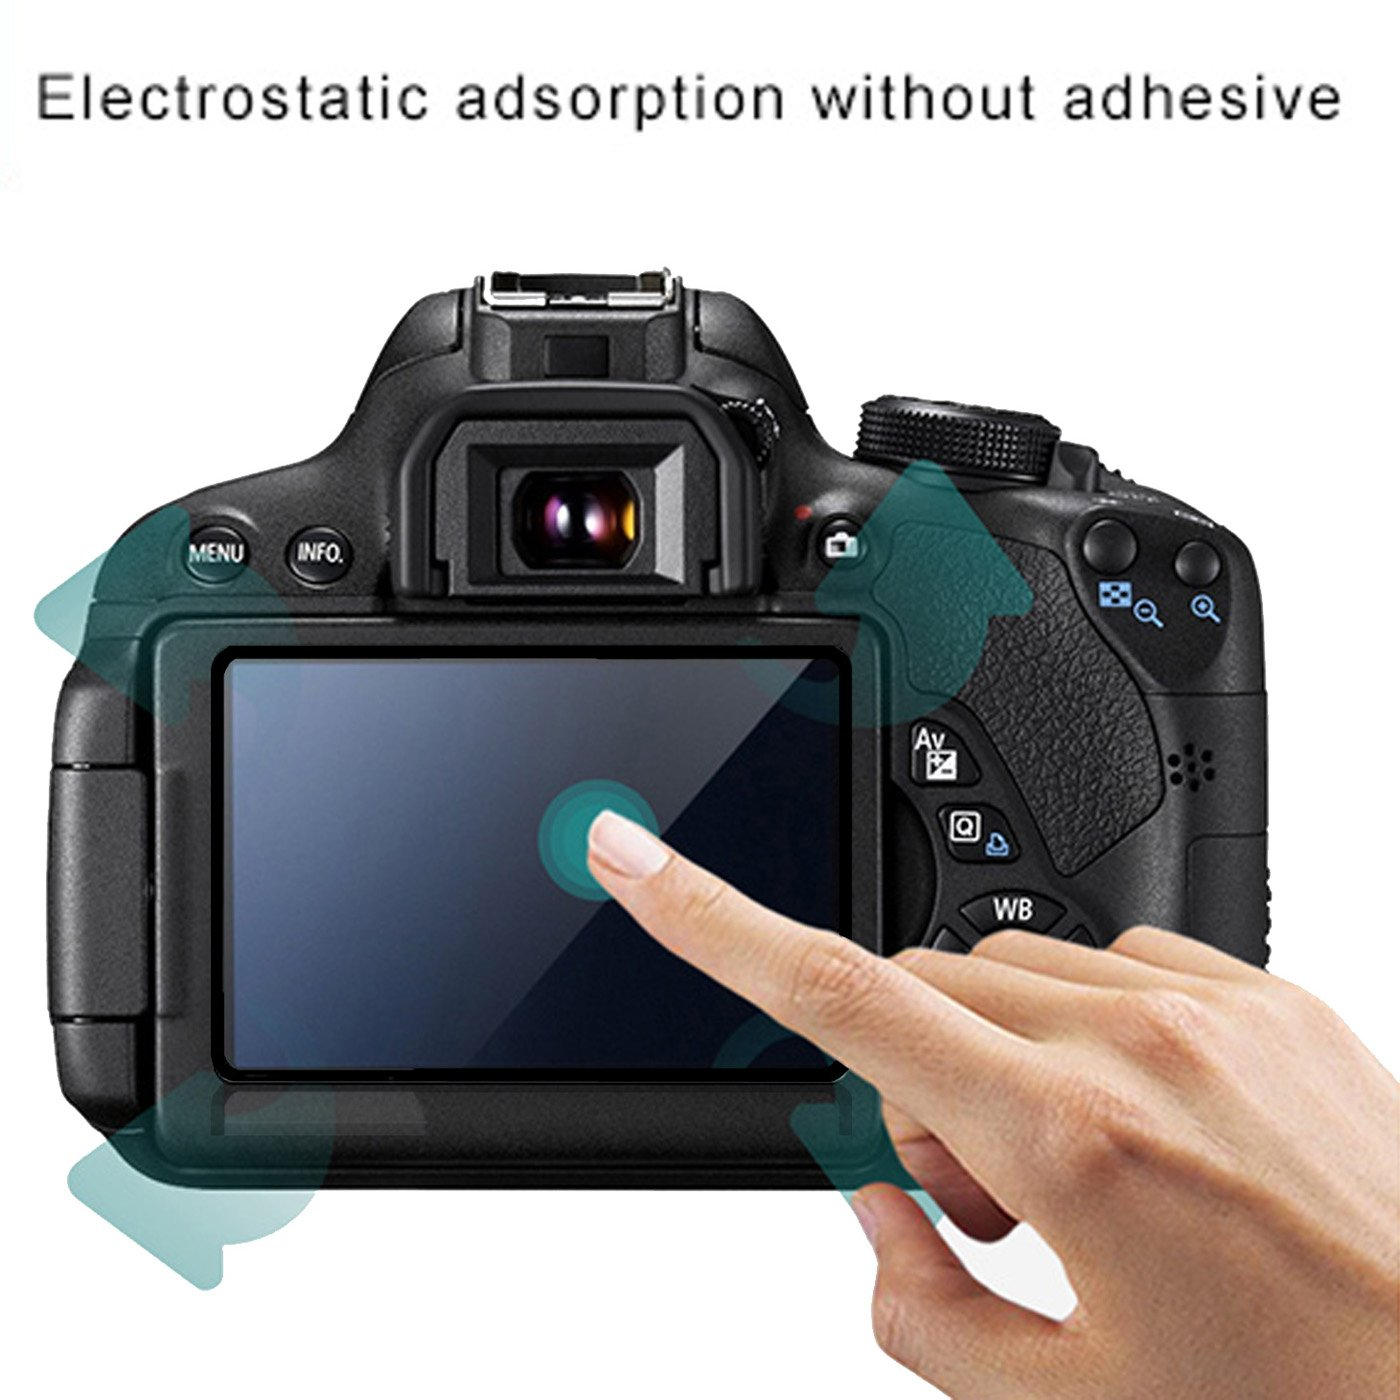 2pcs Frame Desgin Screen Protector Compatible Sony A6400 A6500 A5100 Mirrorless Digital Camera,debous Anti-scratch Tempered Glass crystal-clear Hard Protective Film Shield Cover Guard Lcd protection